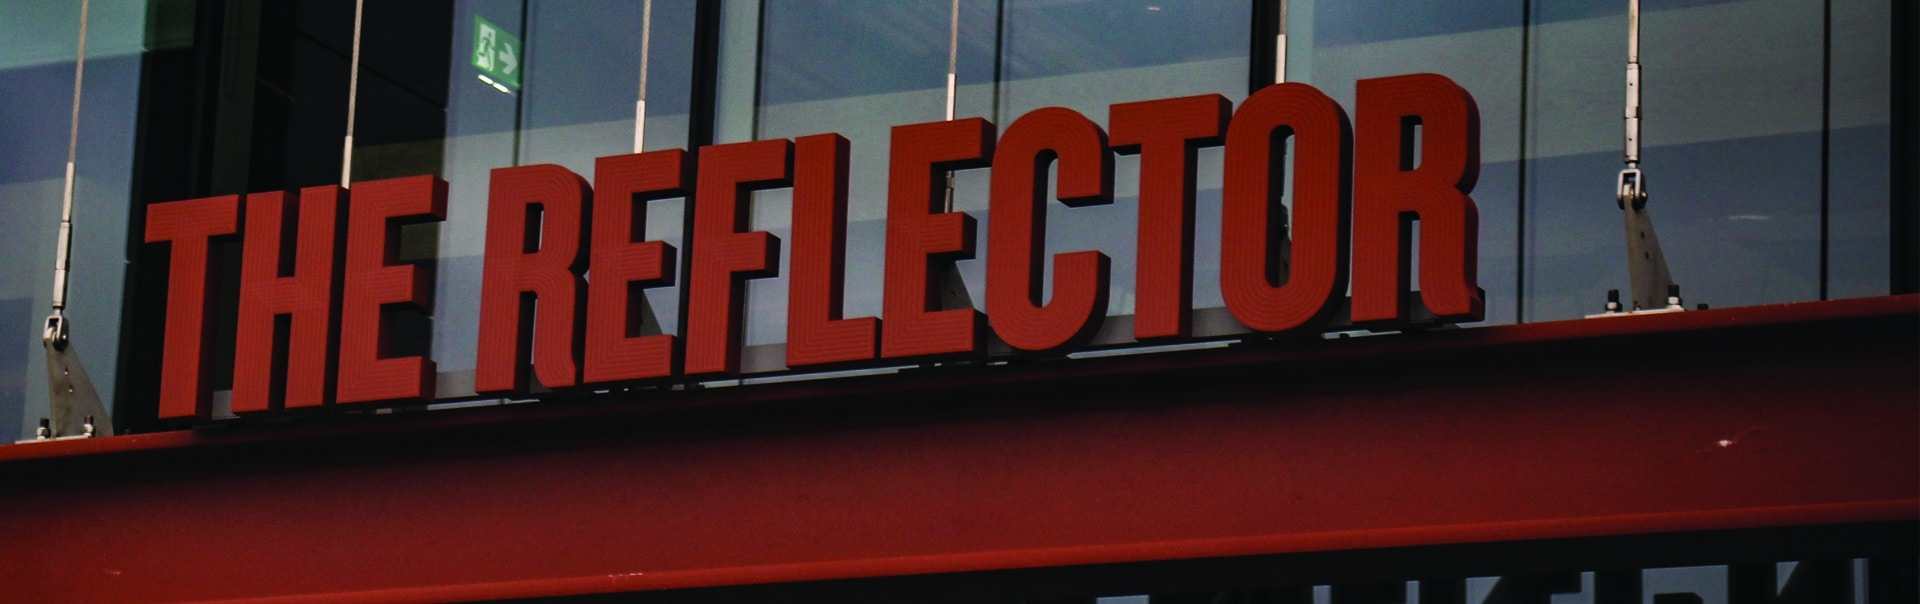 The Reflector | Canopy Signs